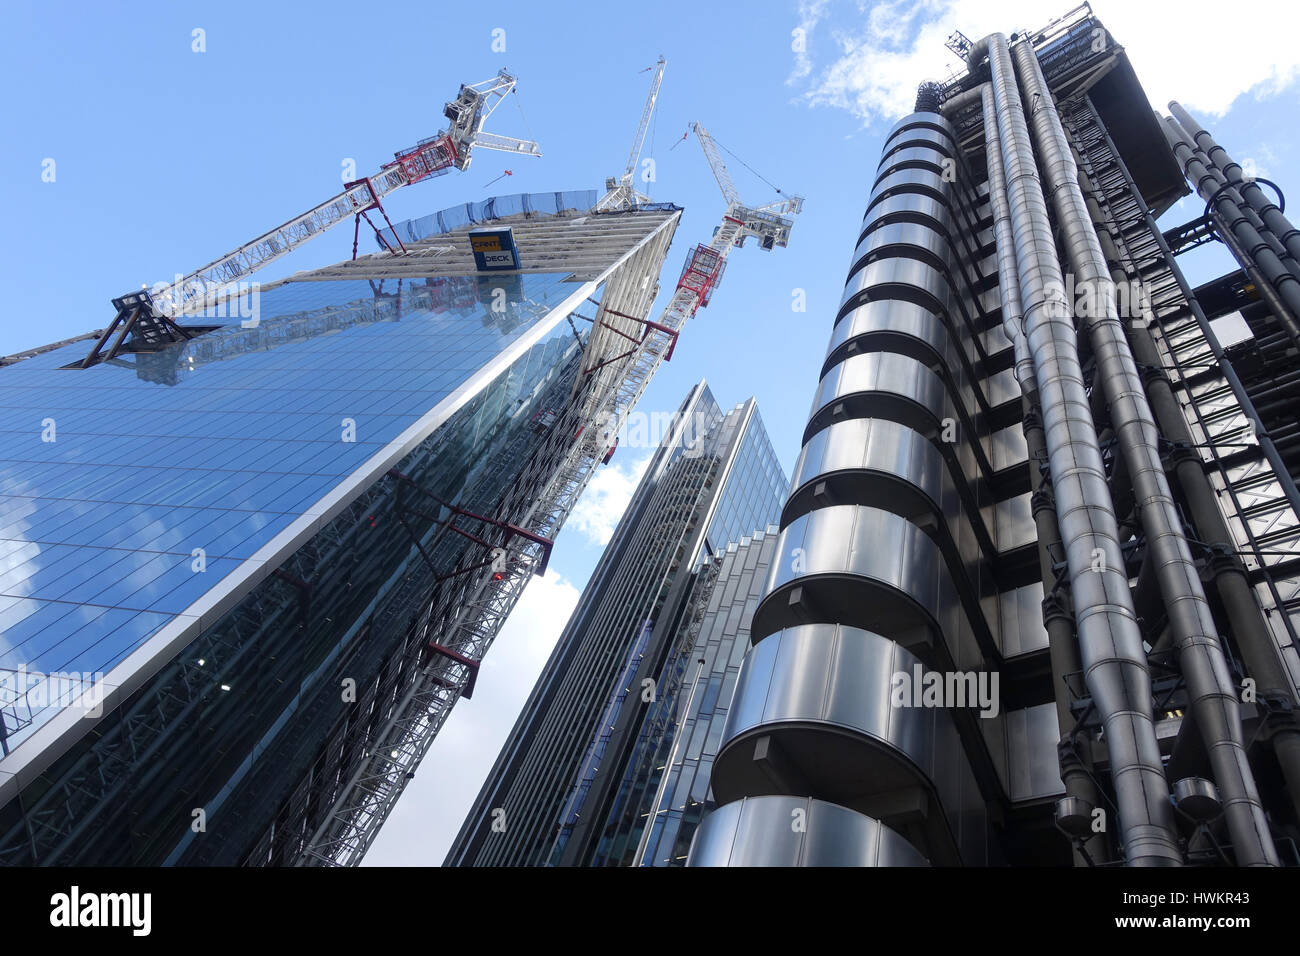 View looking up at the Scalpel skyscraper under construction in the City of London UK - Stock Image